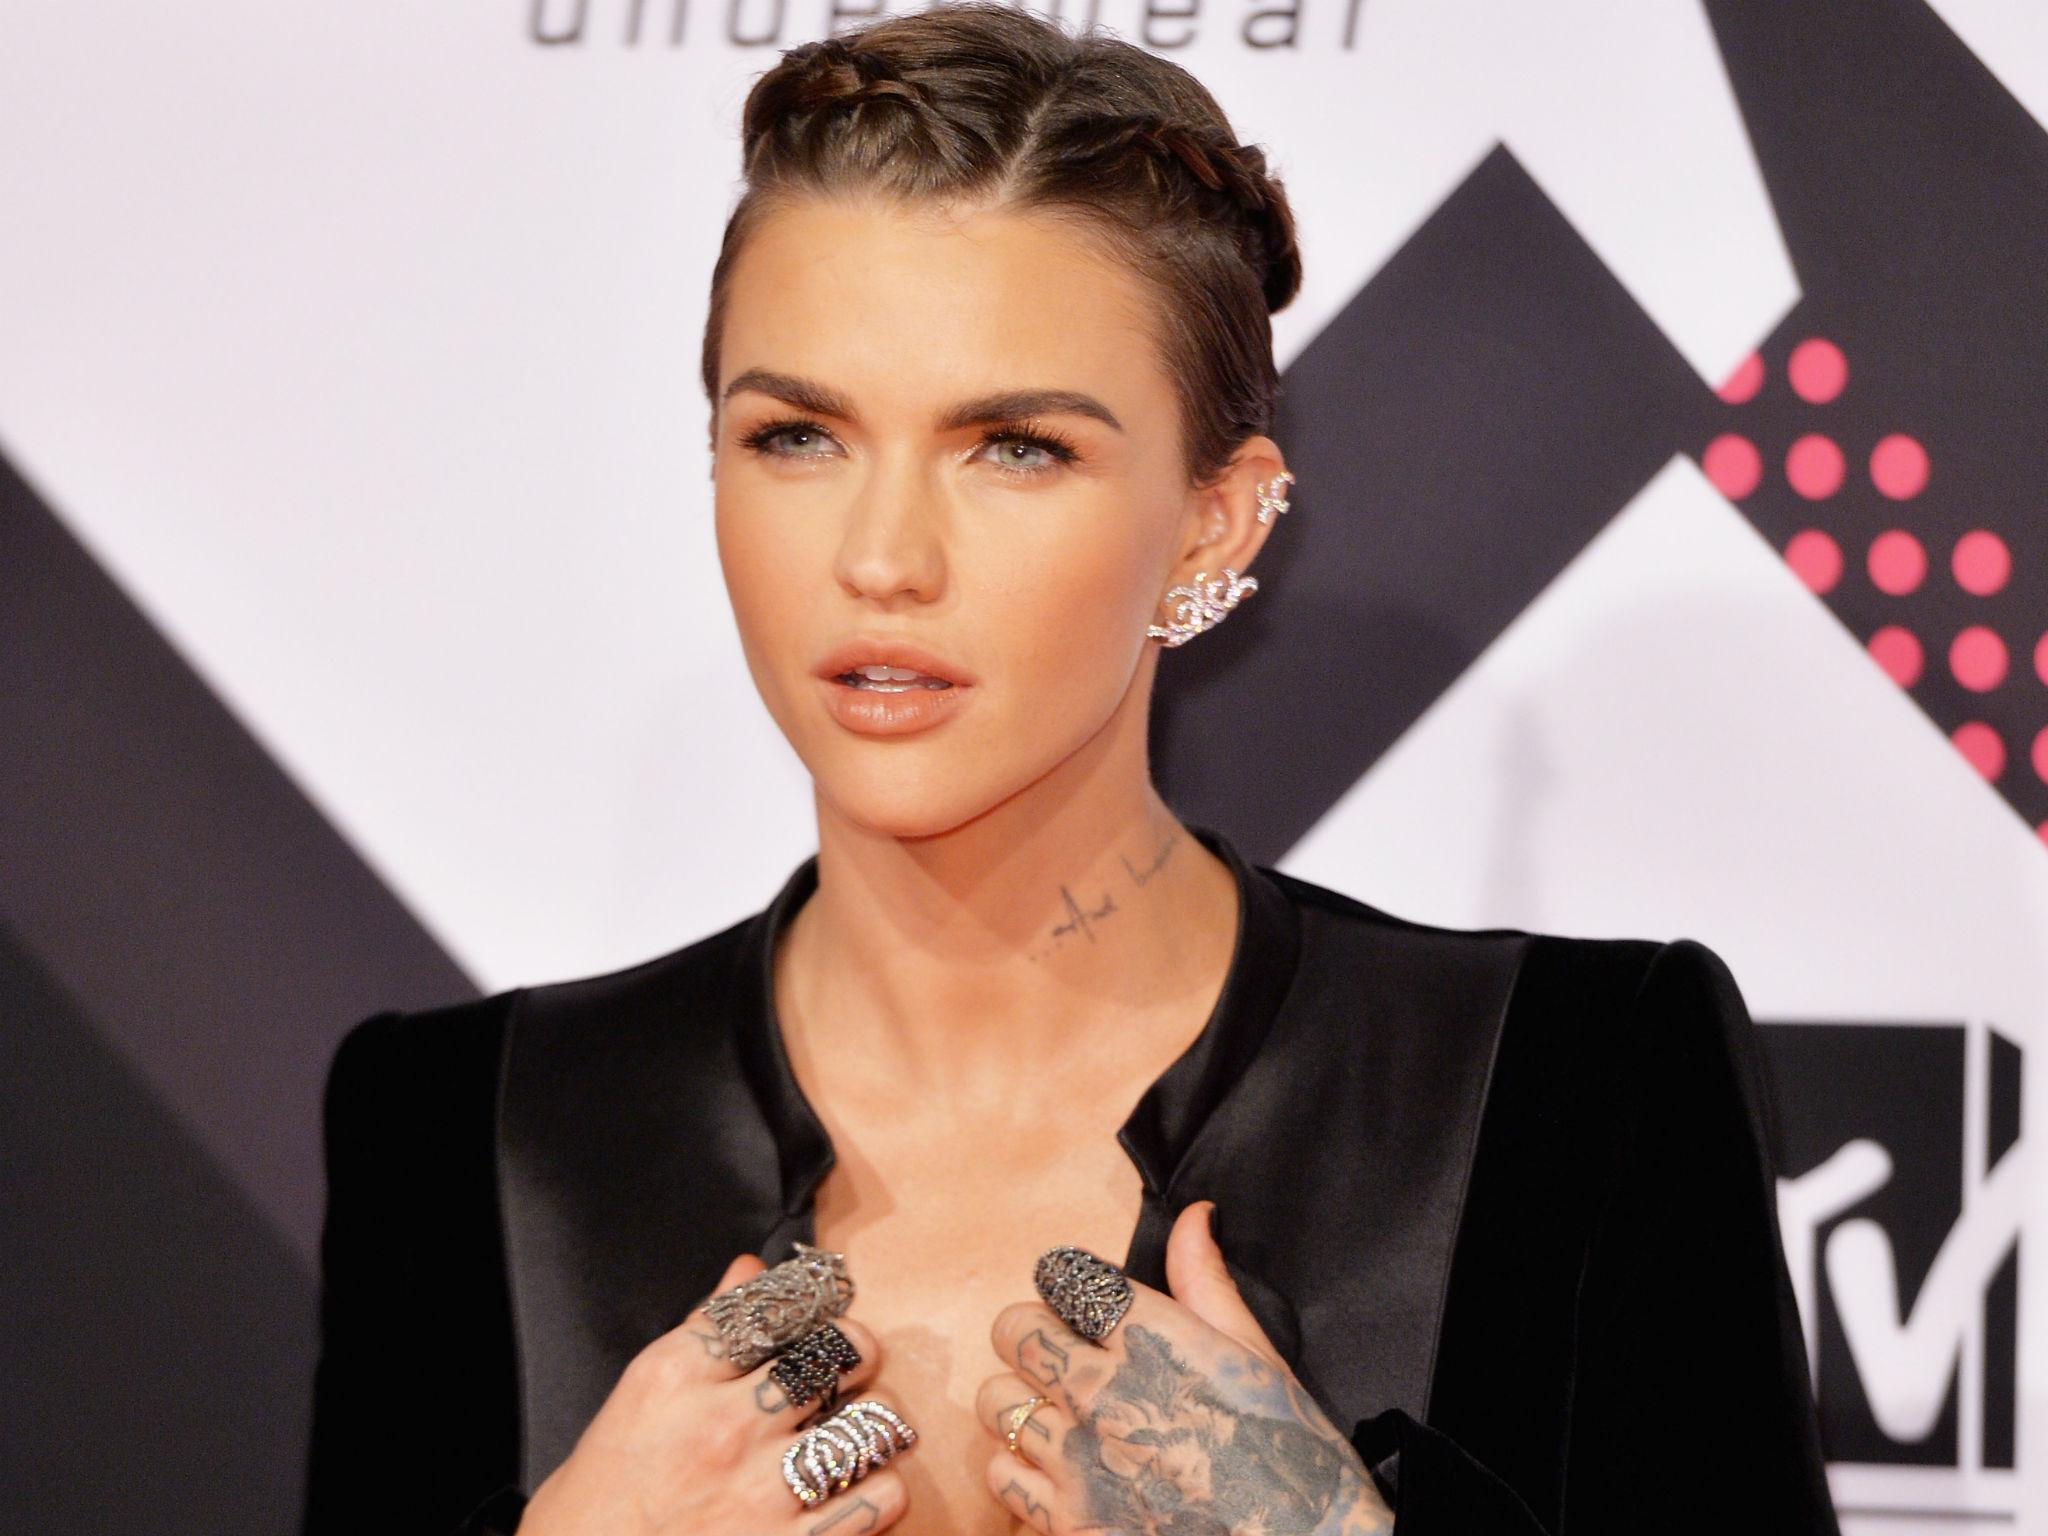 ruby rose: urban decay announces gender fluid model and actress as